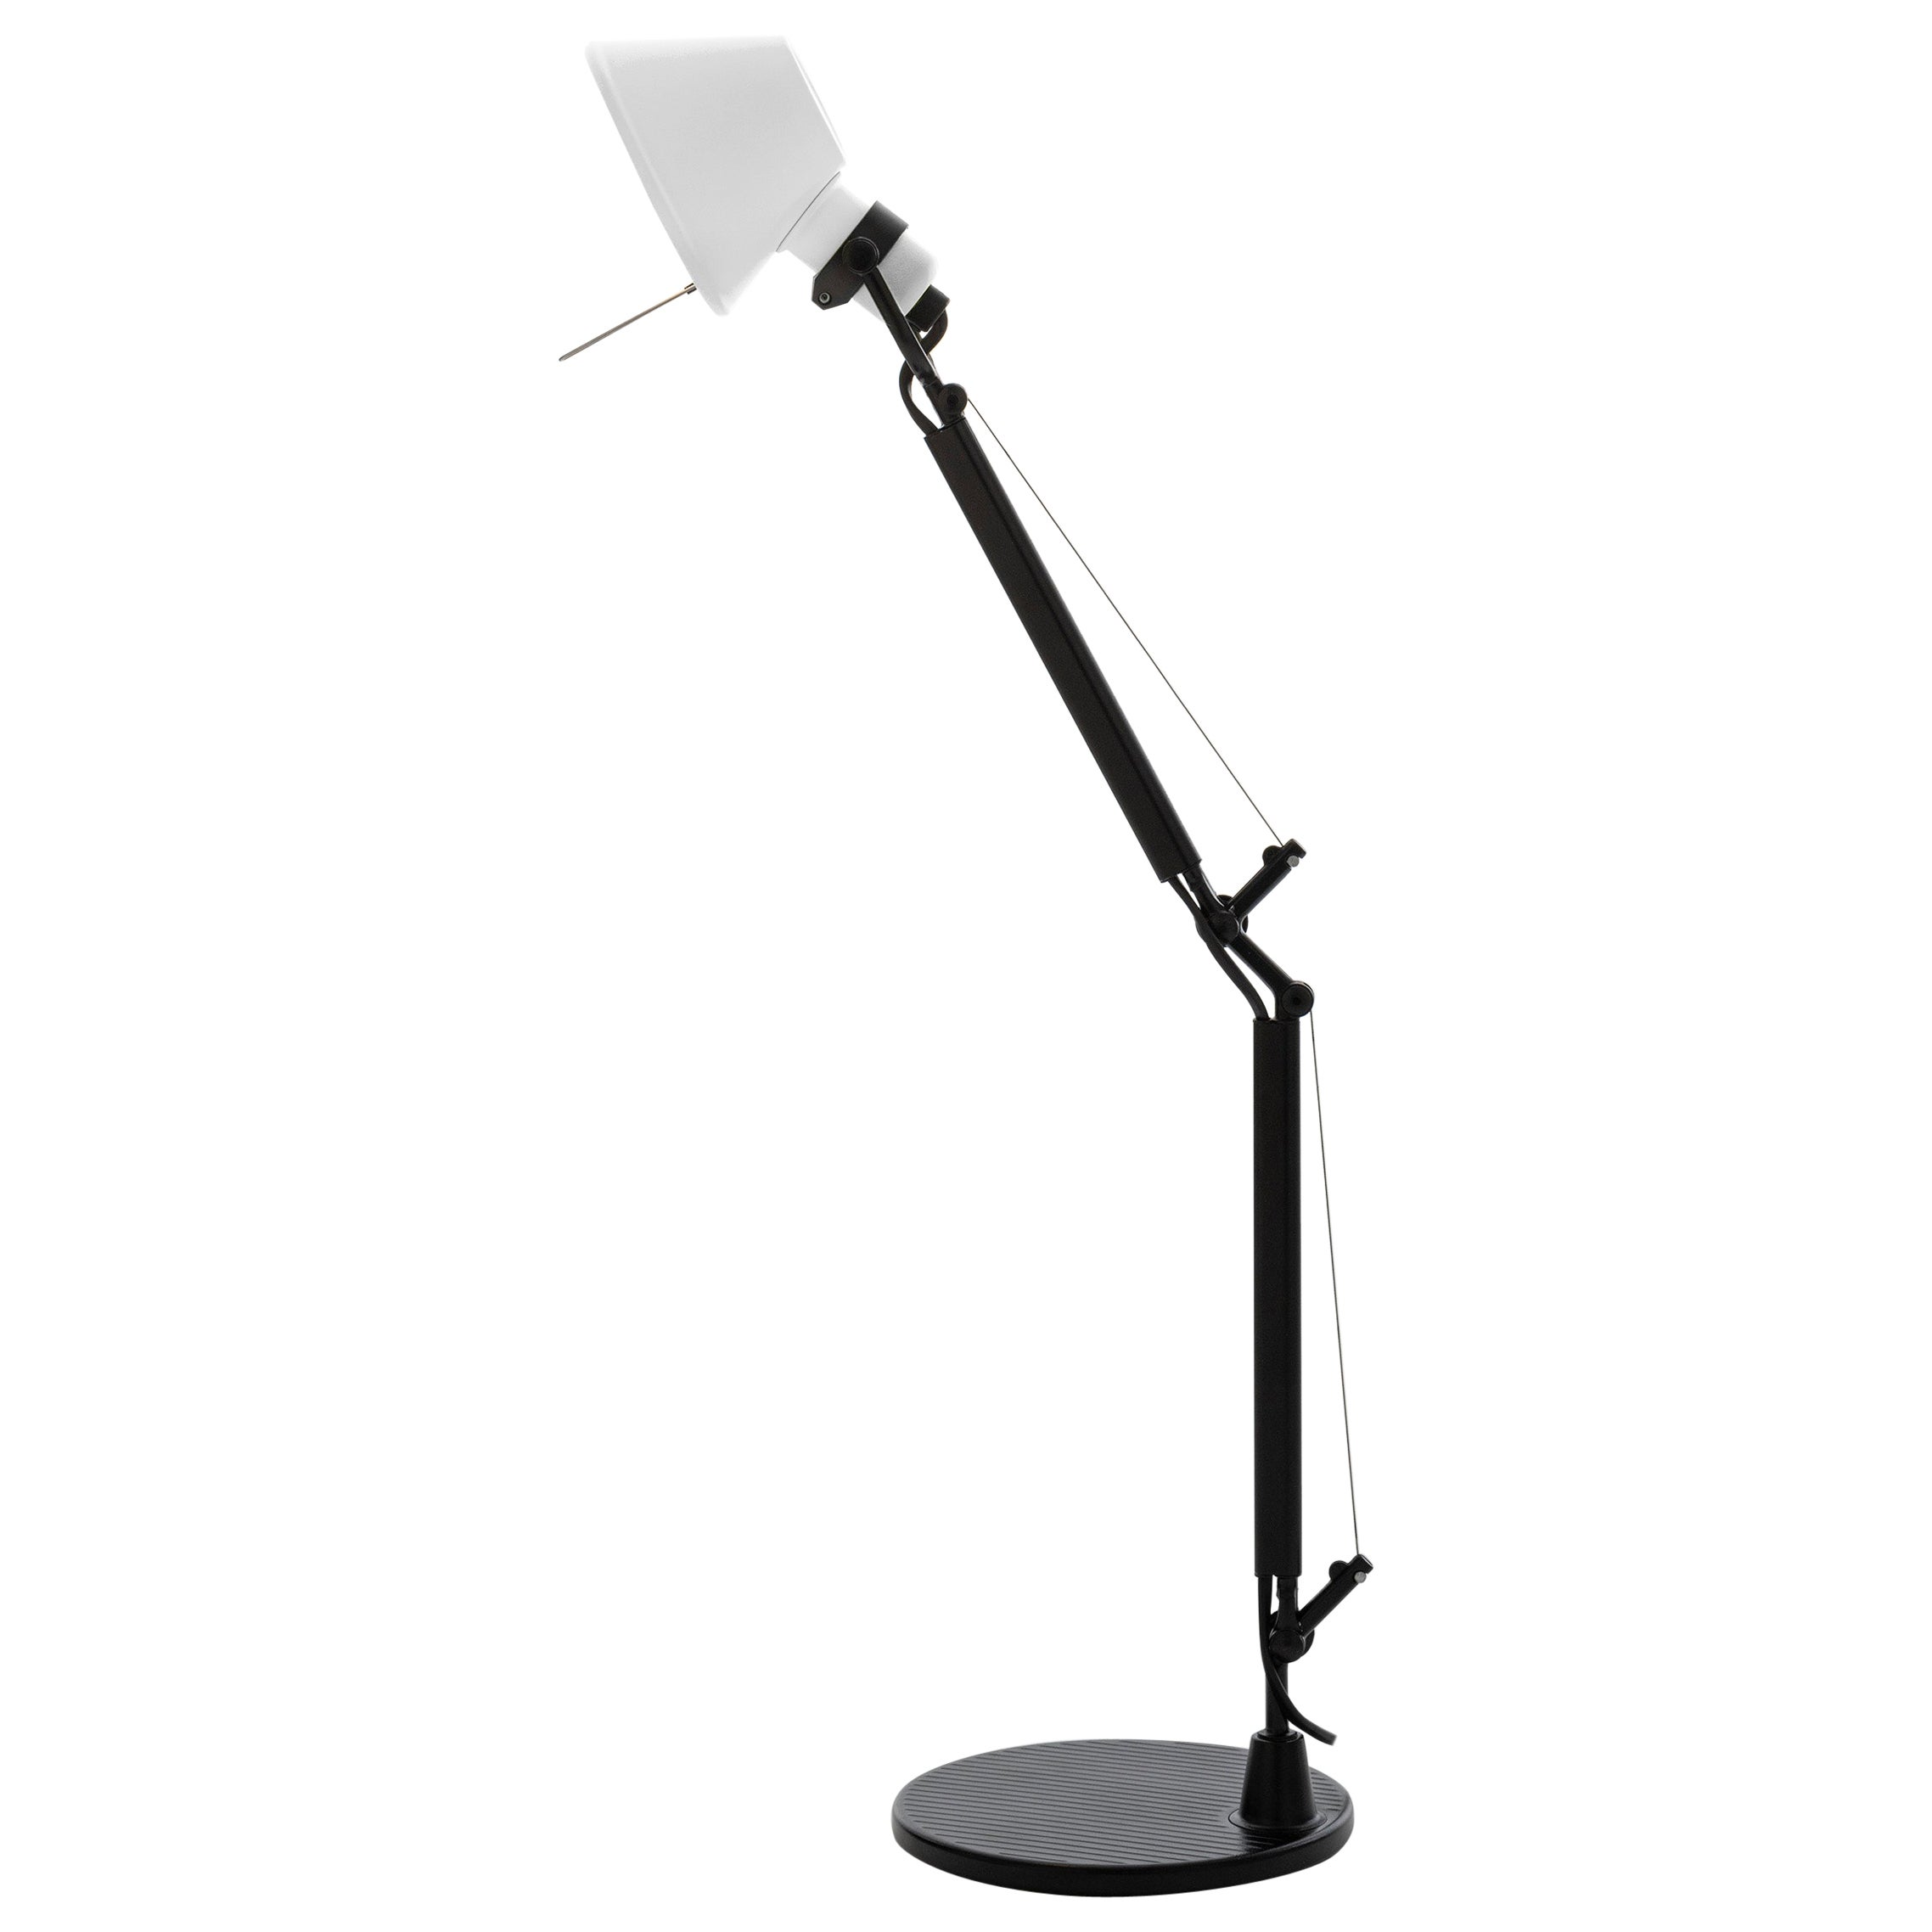 Tolomeo Micro Table Lamp in Black & White by Michele de Lucchi & Giancarlo Fassi